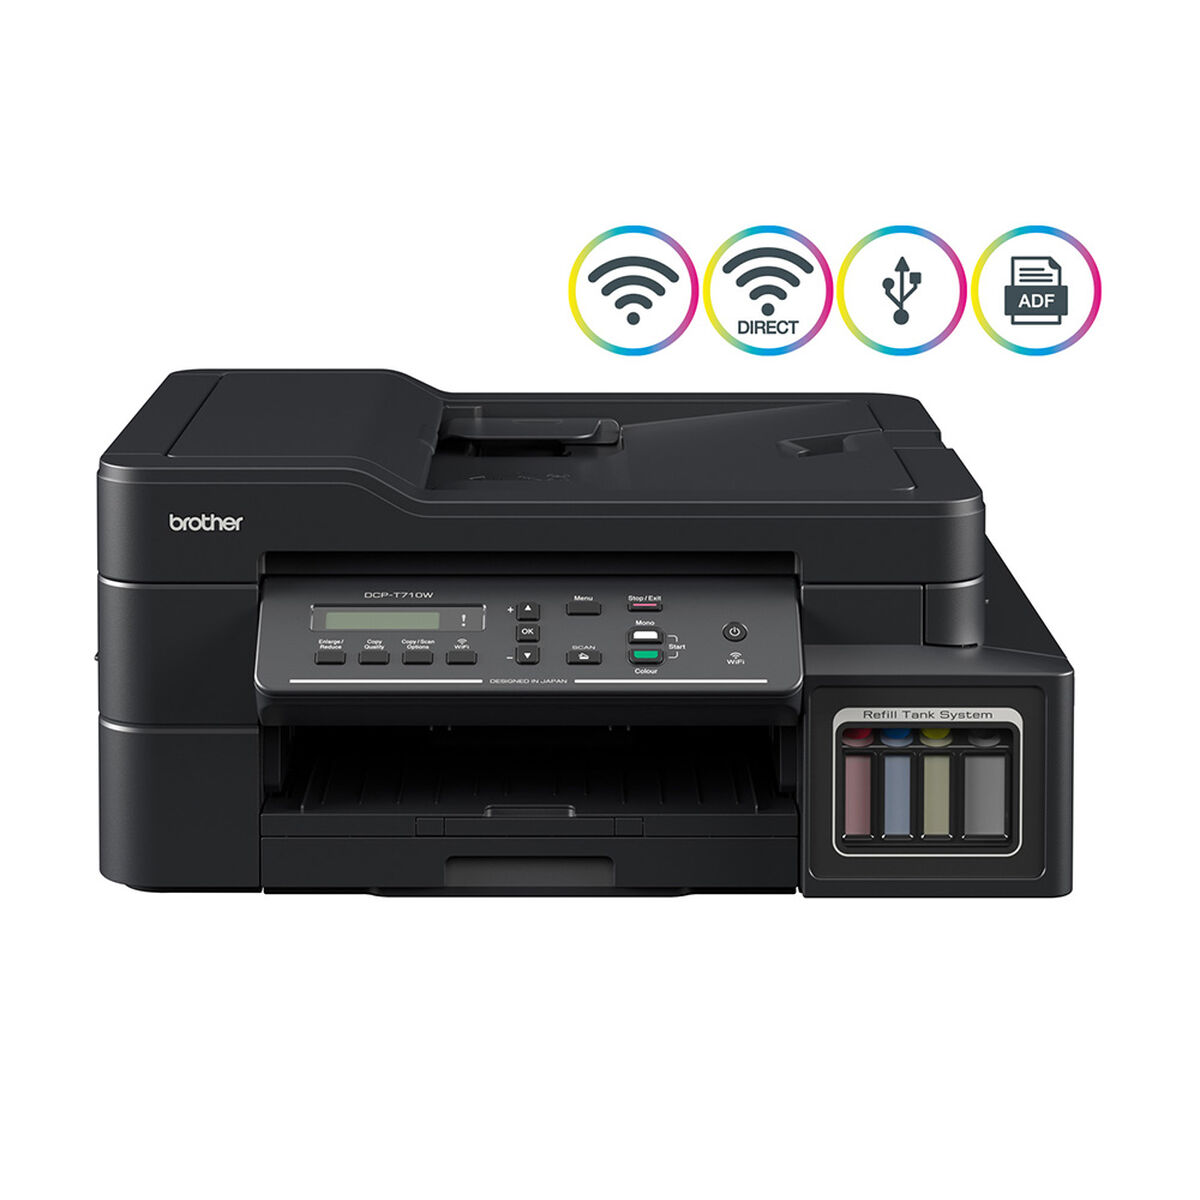 Multifuncional Brother Tinta Continua DCP-T710W WiFi